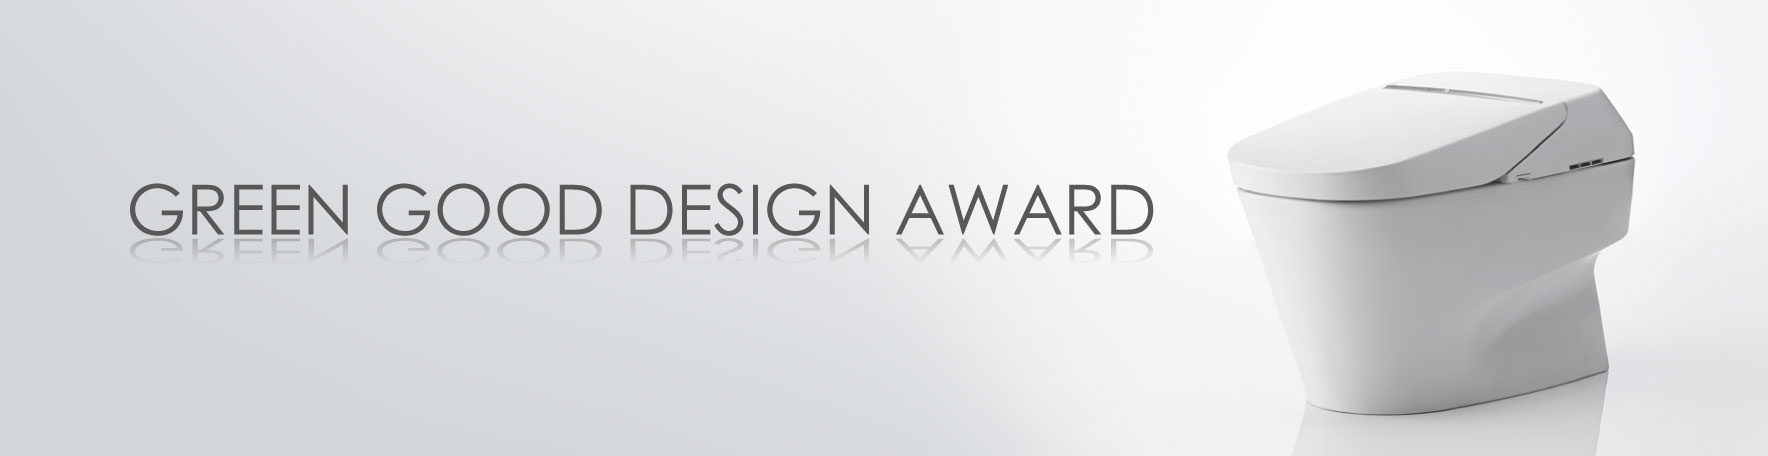 GREEN GOOD DESIGN AWARDS